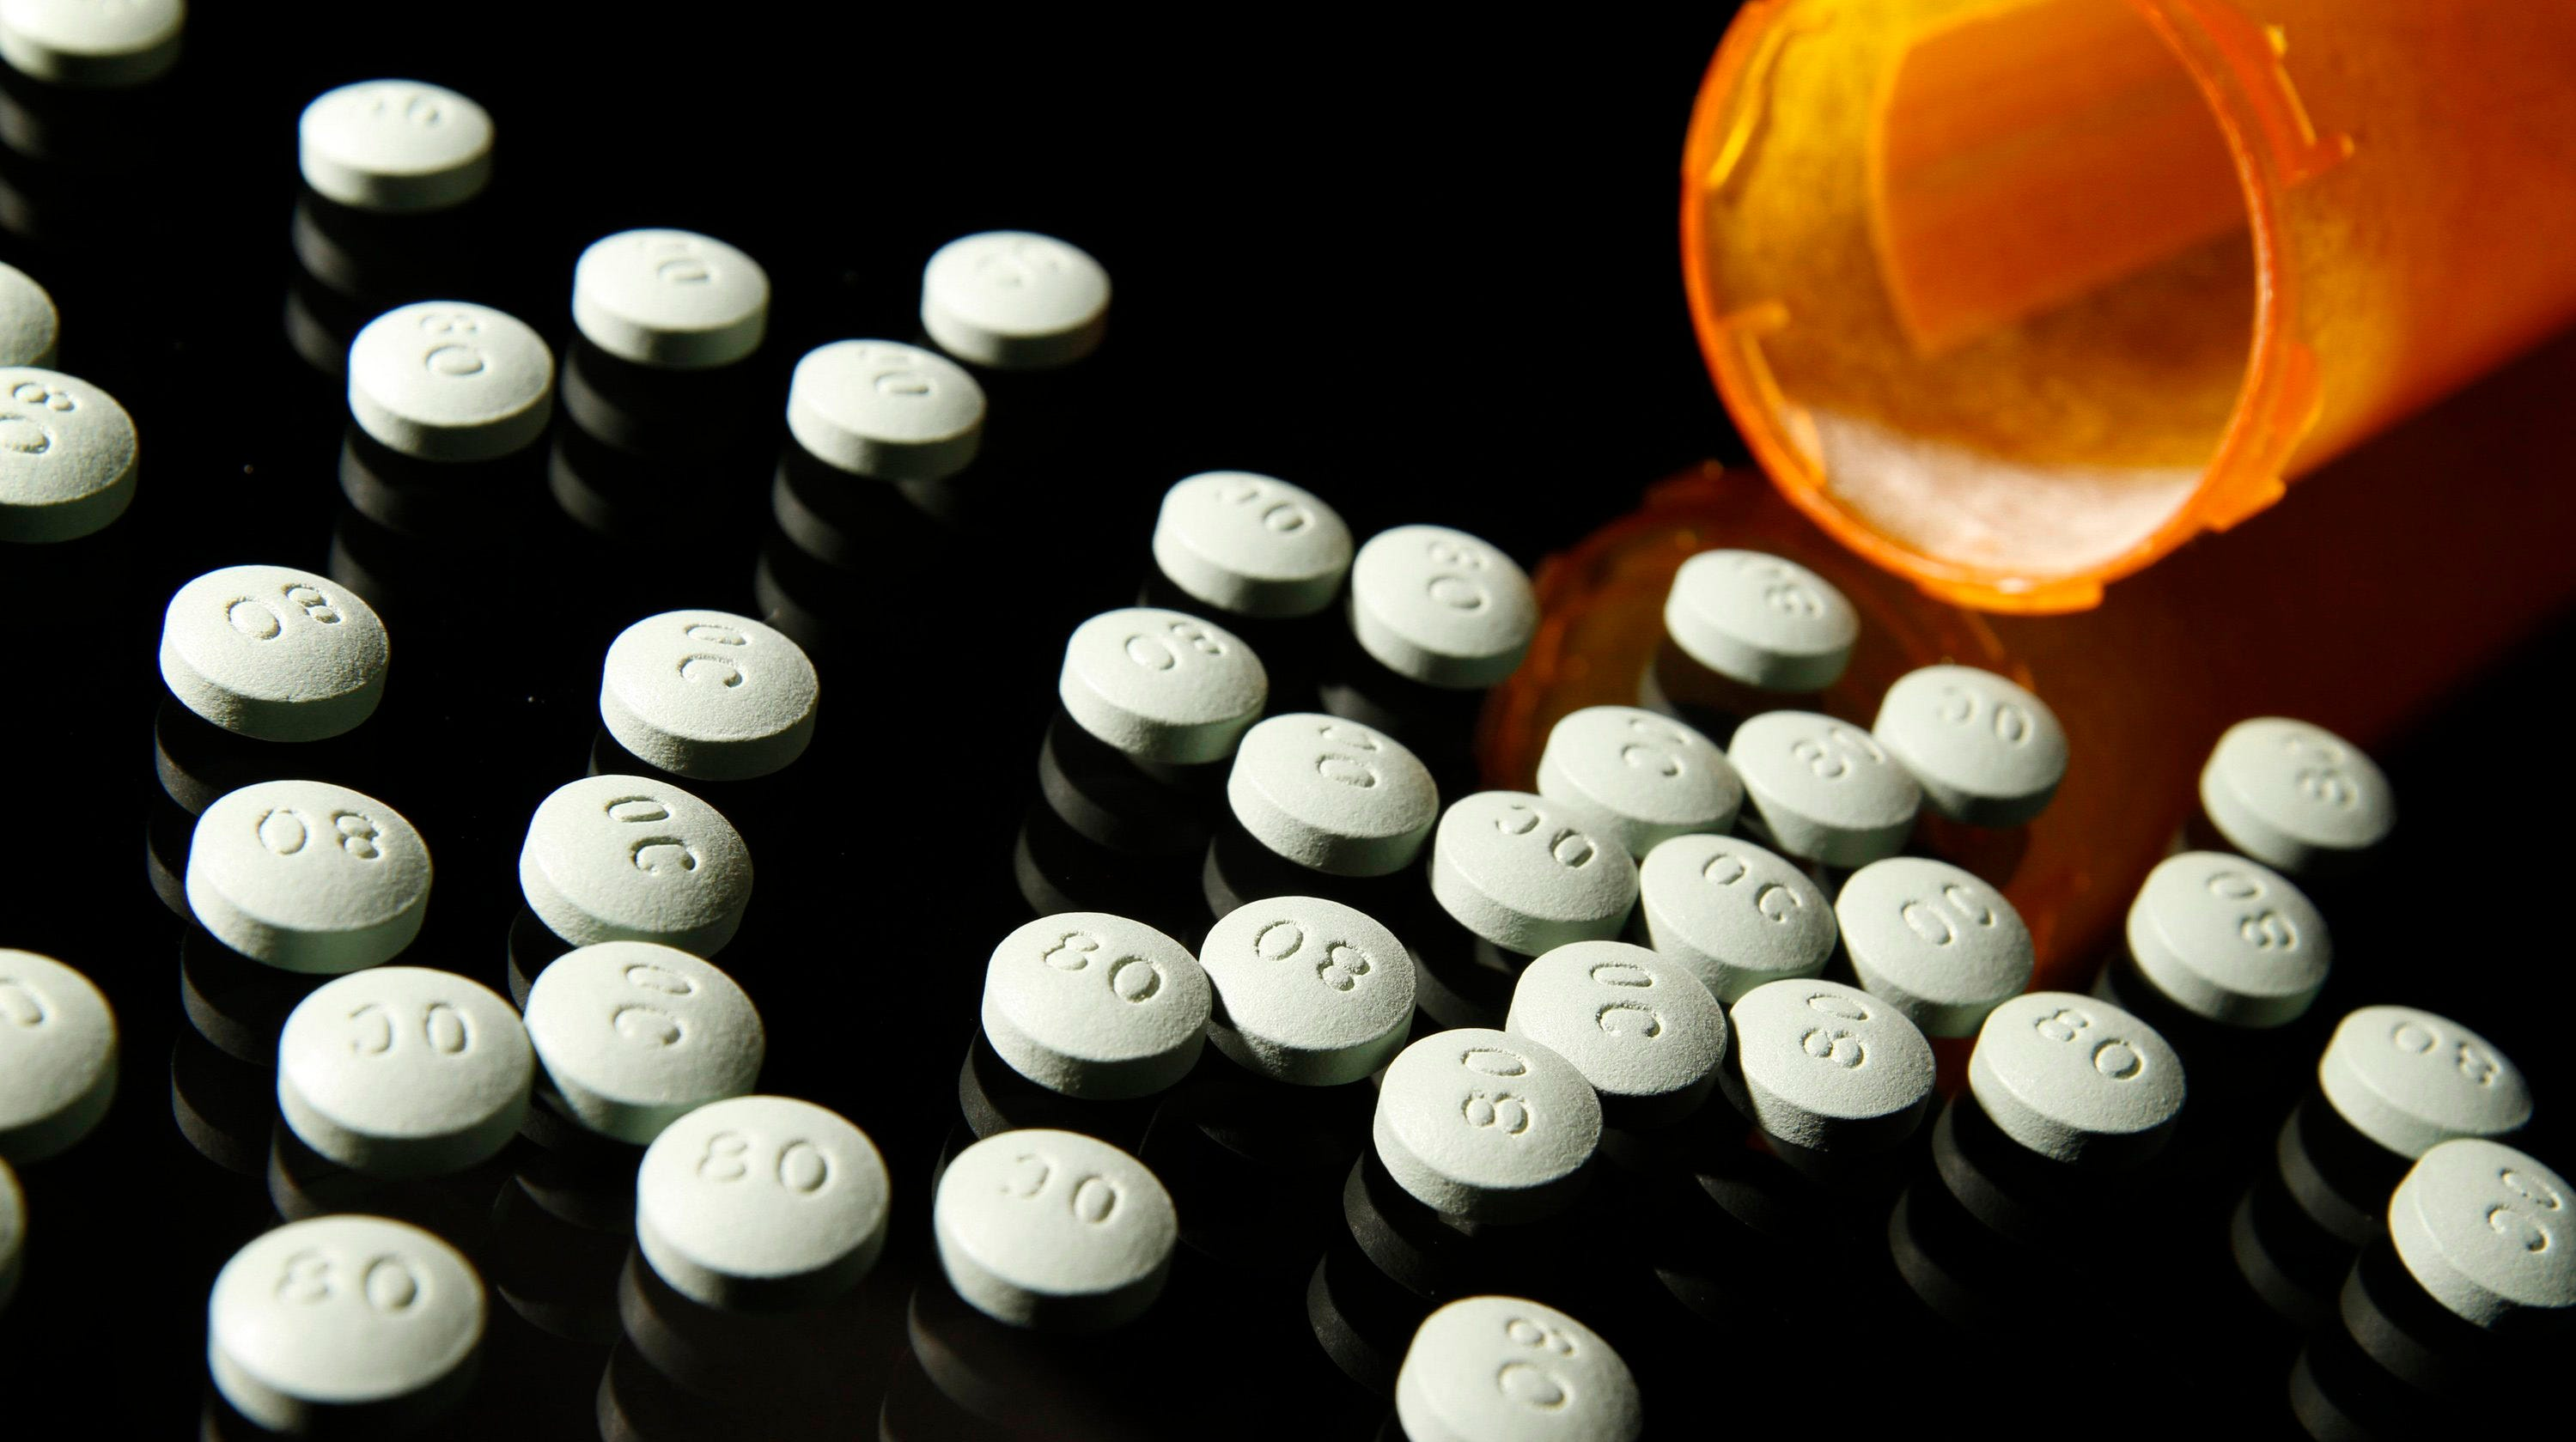 Purdue Pharma has sold more than $27 billion worth of the powerful painkiller OxyContin since its introduction in 1996.